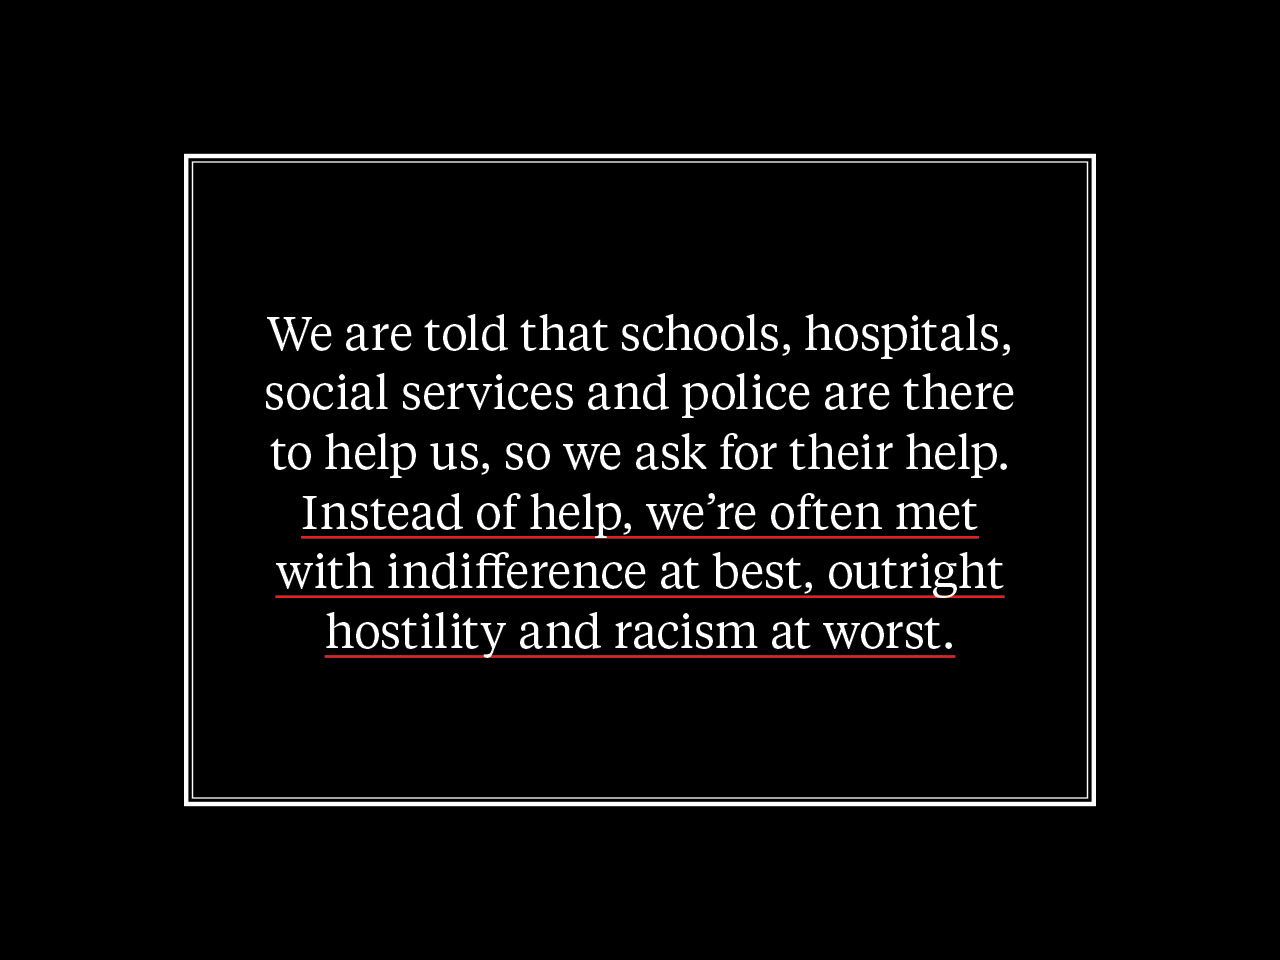 "A quote from the story: ""We are told that schools, hospitals, social services and police are there to help us, so we ask for help. Instead of help, we're often met with indifference at best, outright hostility and racism at worst."""